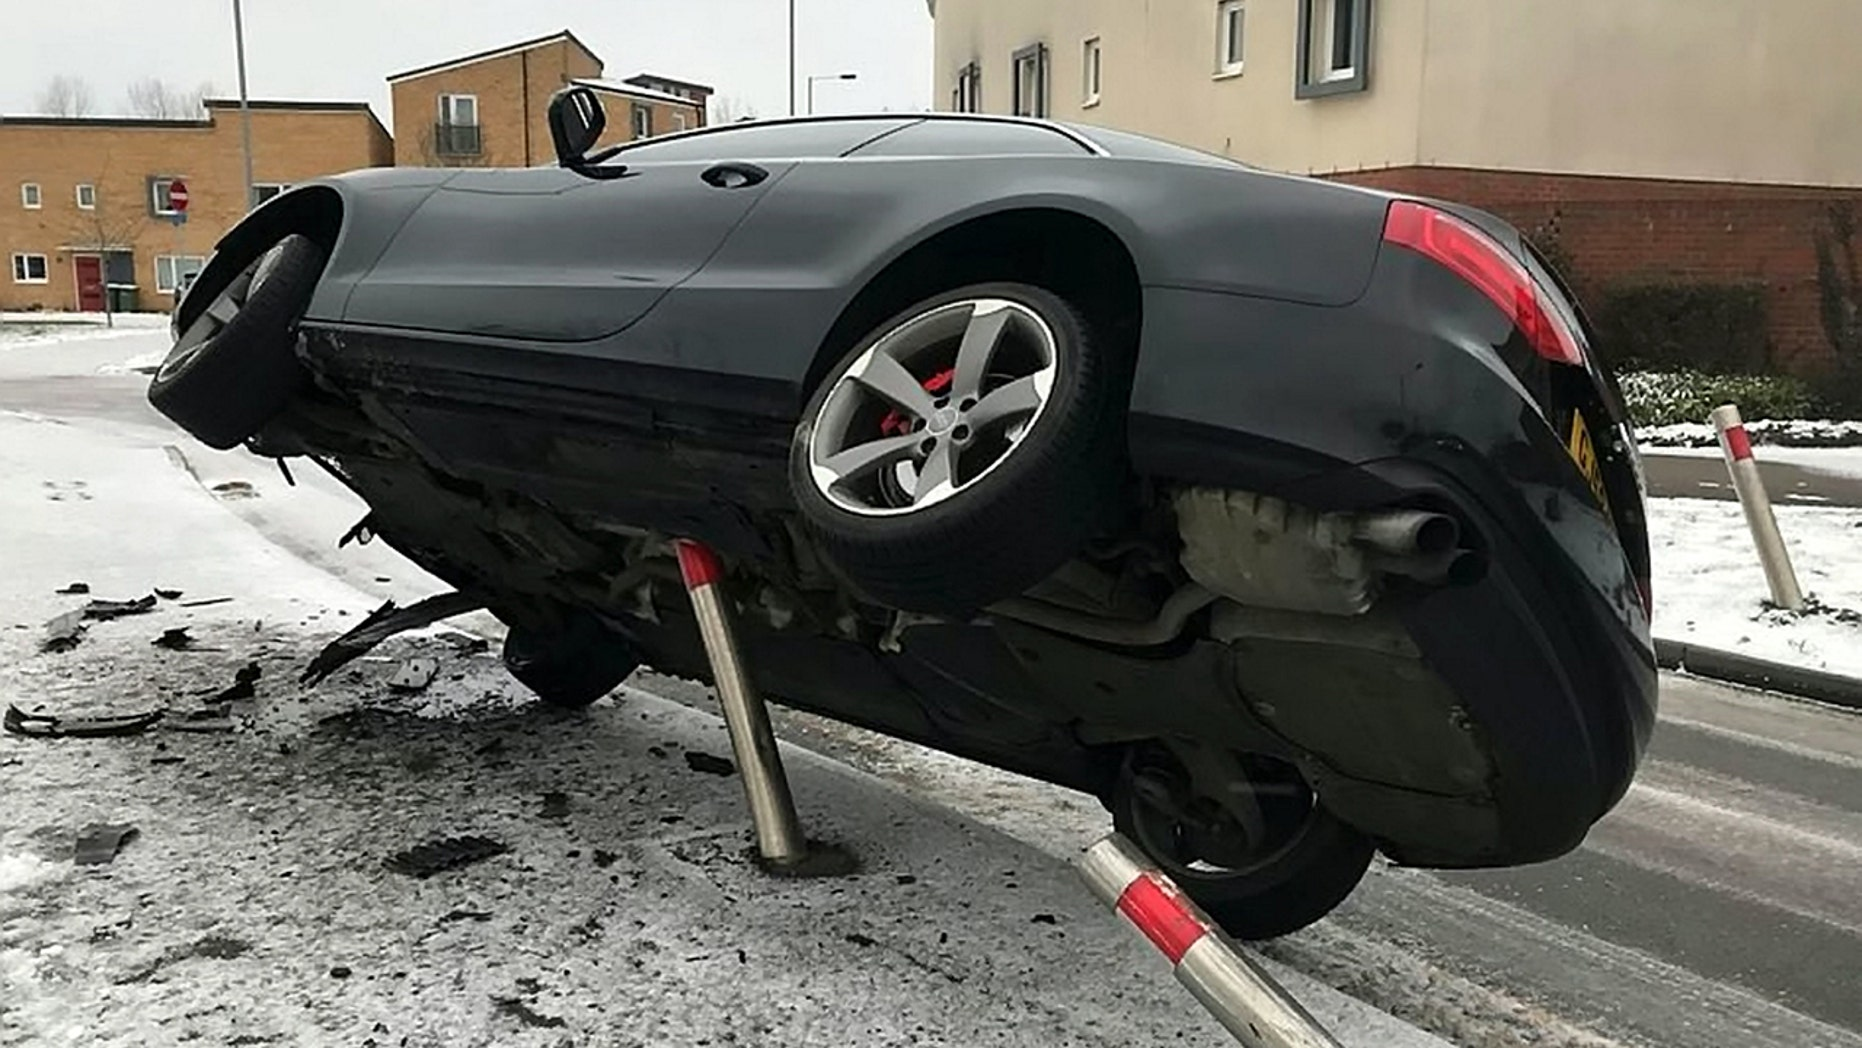 """This is the unbelievable moment in which a black Audi is frozen mid air after veering off the road and colliding with a metal post on a frost covered pavement. See Masons story MNAUDI; The picture shows a freeze-frame moment which looks like it is from an action movie with the car caught in the air at a seemingly impossible angle. Beds Cambs Herts Road Policing Unit said the suspected driver was standing by his car when they arrived and blew a breath test of almost double the drink drive limit. BCH Road Policing said on Twitter: """"2nd Job this morning in #Peterborough, suspected driver stood next to his car blew 72ugl roadside, driver on way to #custody for evidential readings."""" No-one was injured in the crash. Cambs police have been contacted for comment."""